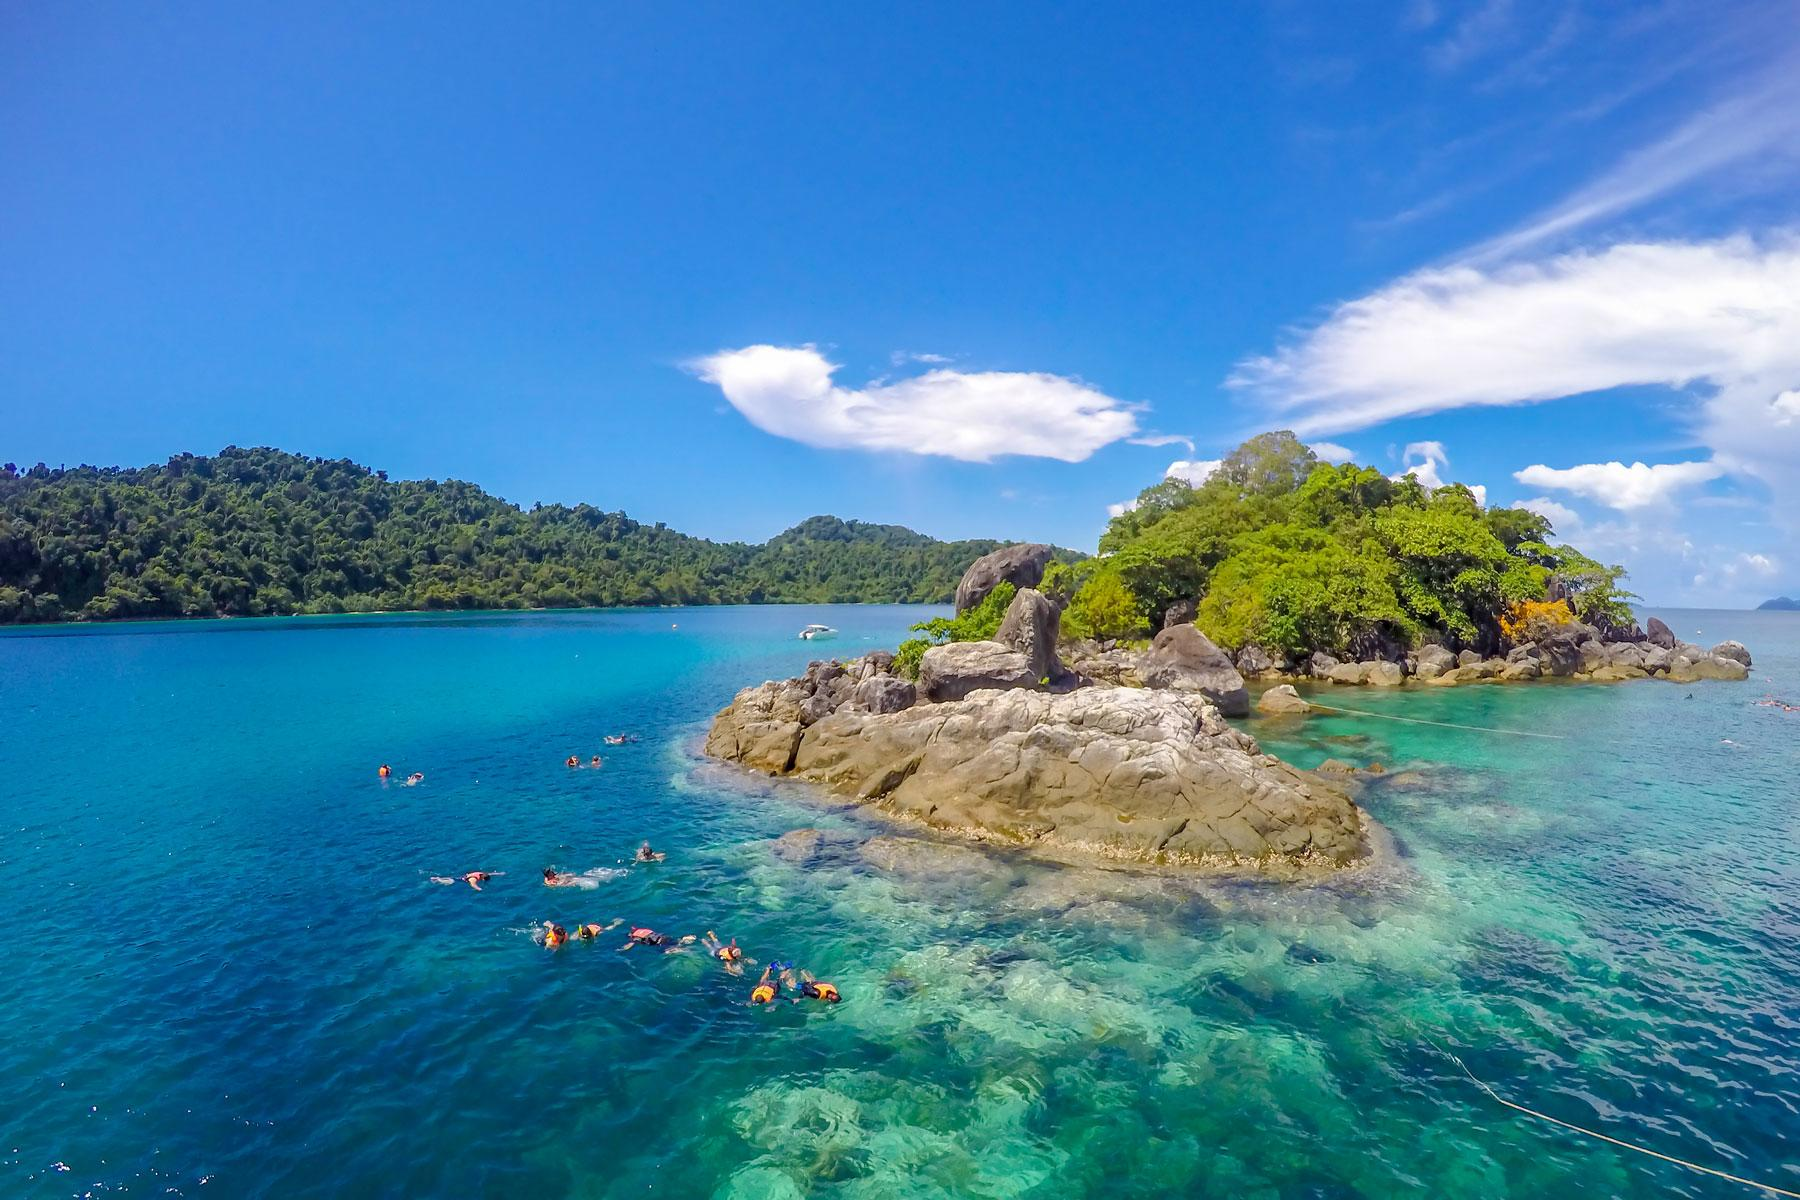 10_Thailand_Snorkeling_Diving_Koh_Chang_Shutterstock_744571999